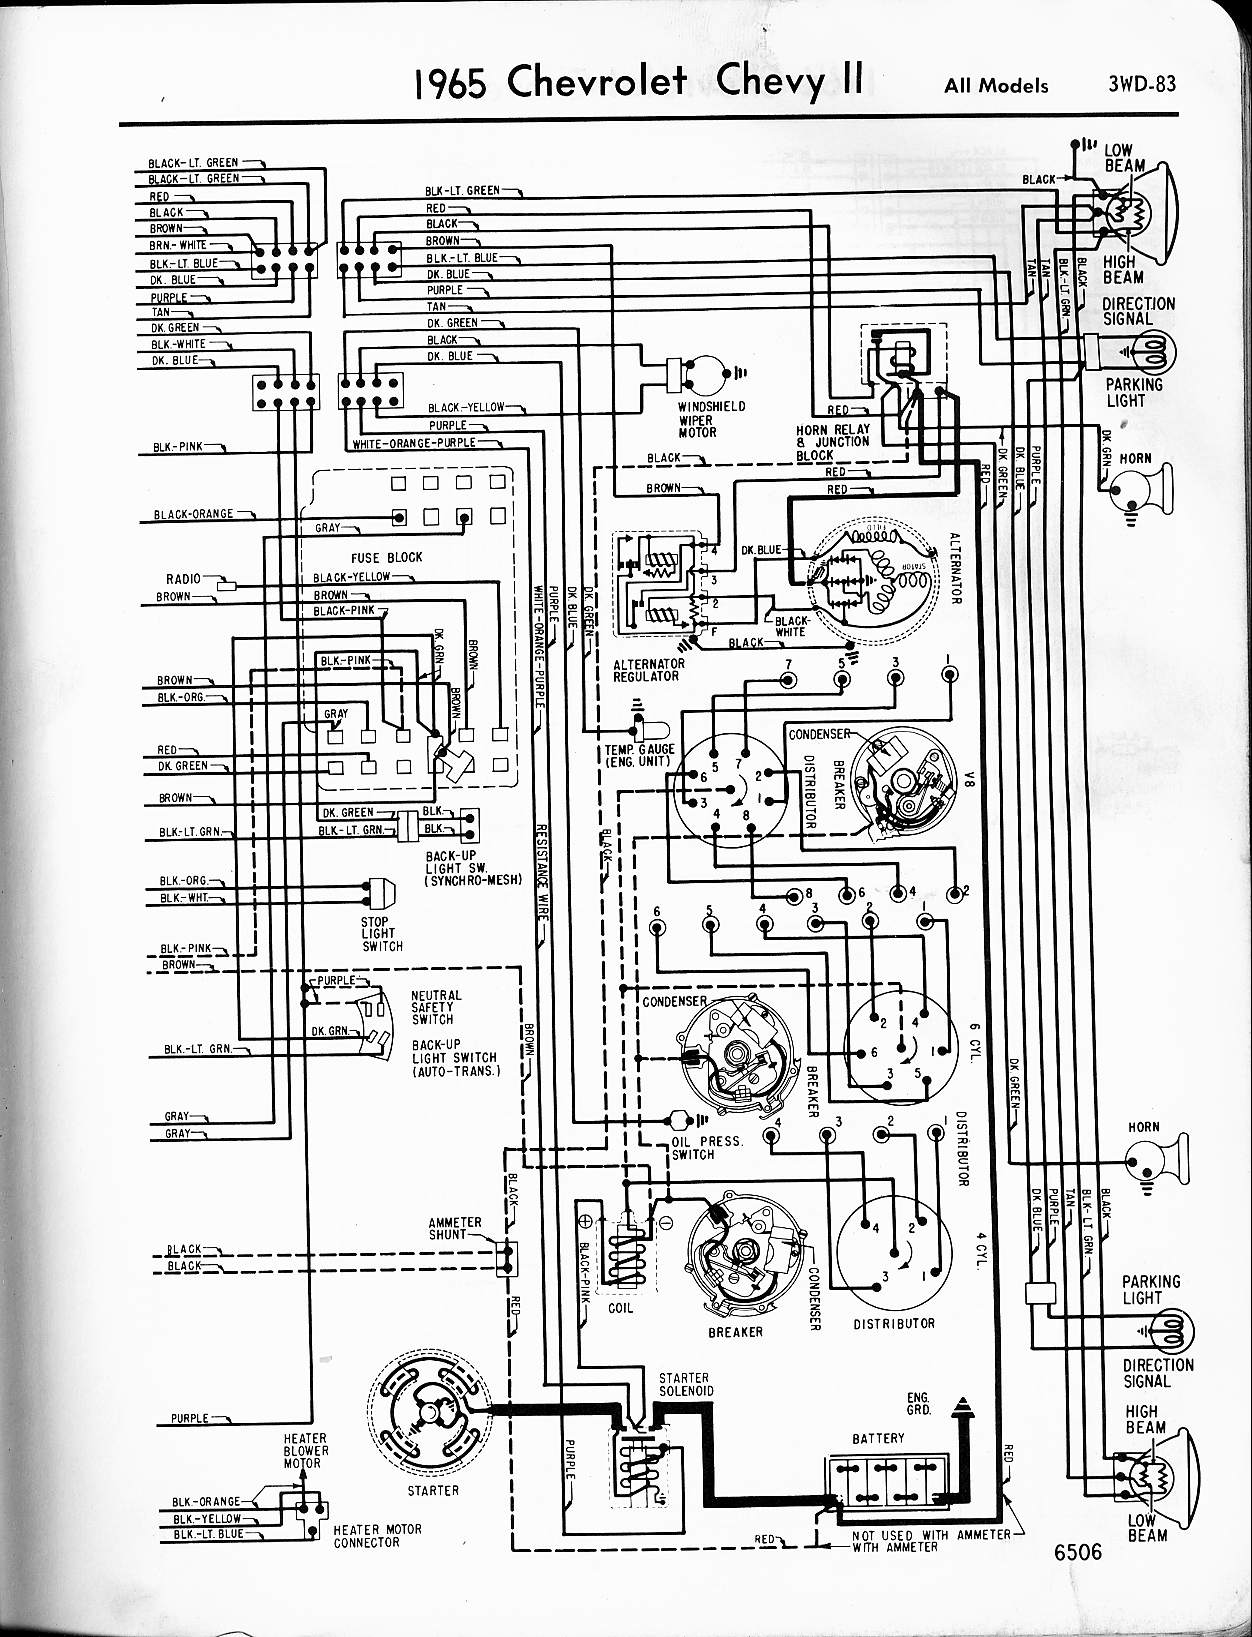 1965 el camino wiring diagram online schematic diagram u2022 rh holyoak co 1970 chevy c20 wiring diagram 1970 chevy c20 wiring diagram